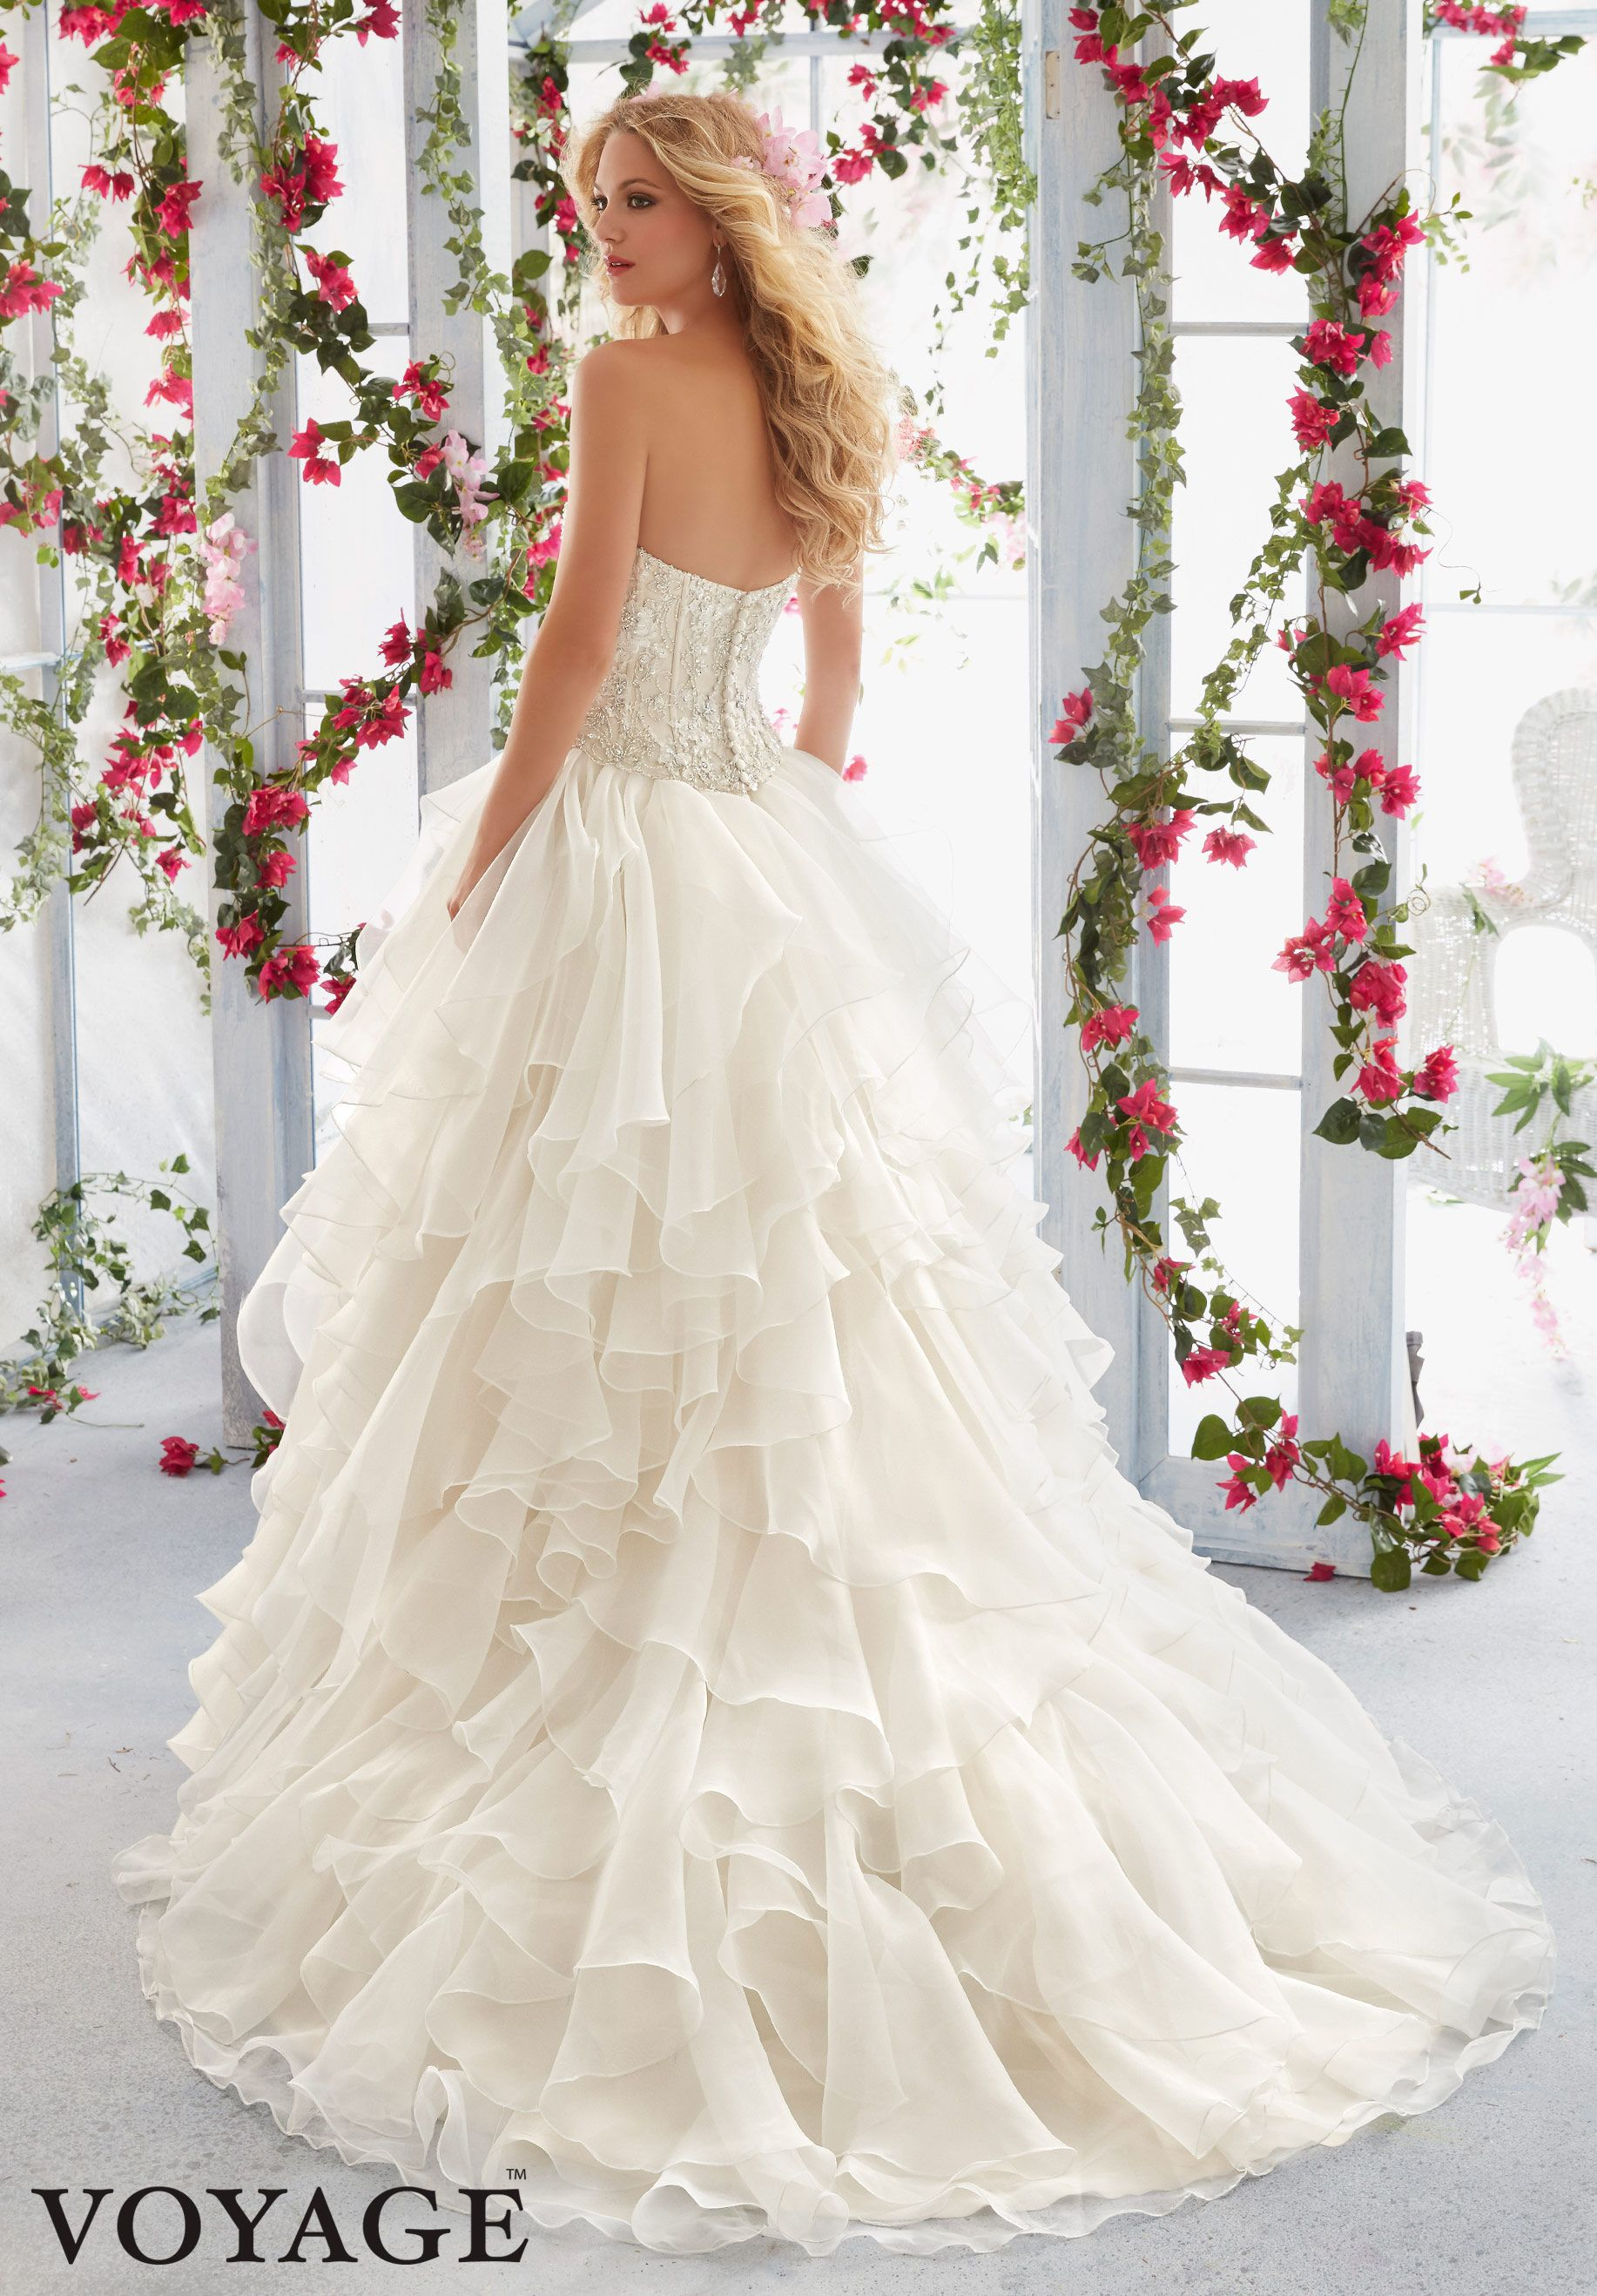 Fantasy bridal contemporary and modest bridal gowns for utah fantasy bridal contemporary and modest bridal gowns for utah brides salt lake city ombrellifo Choice Image